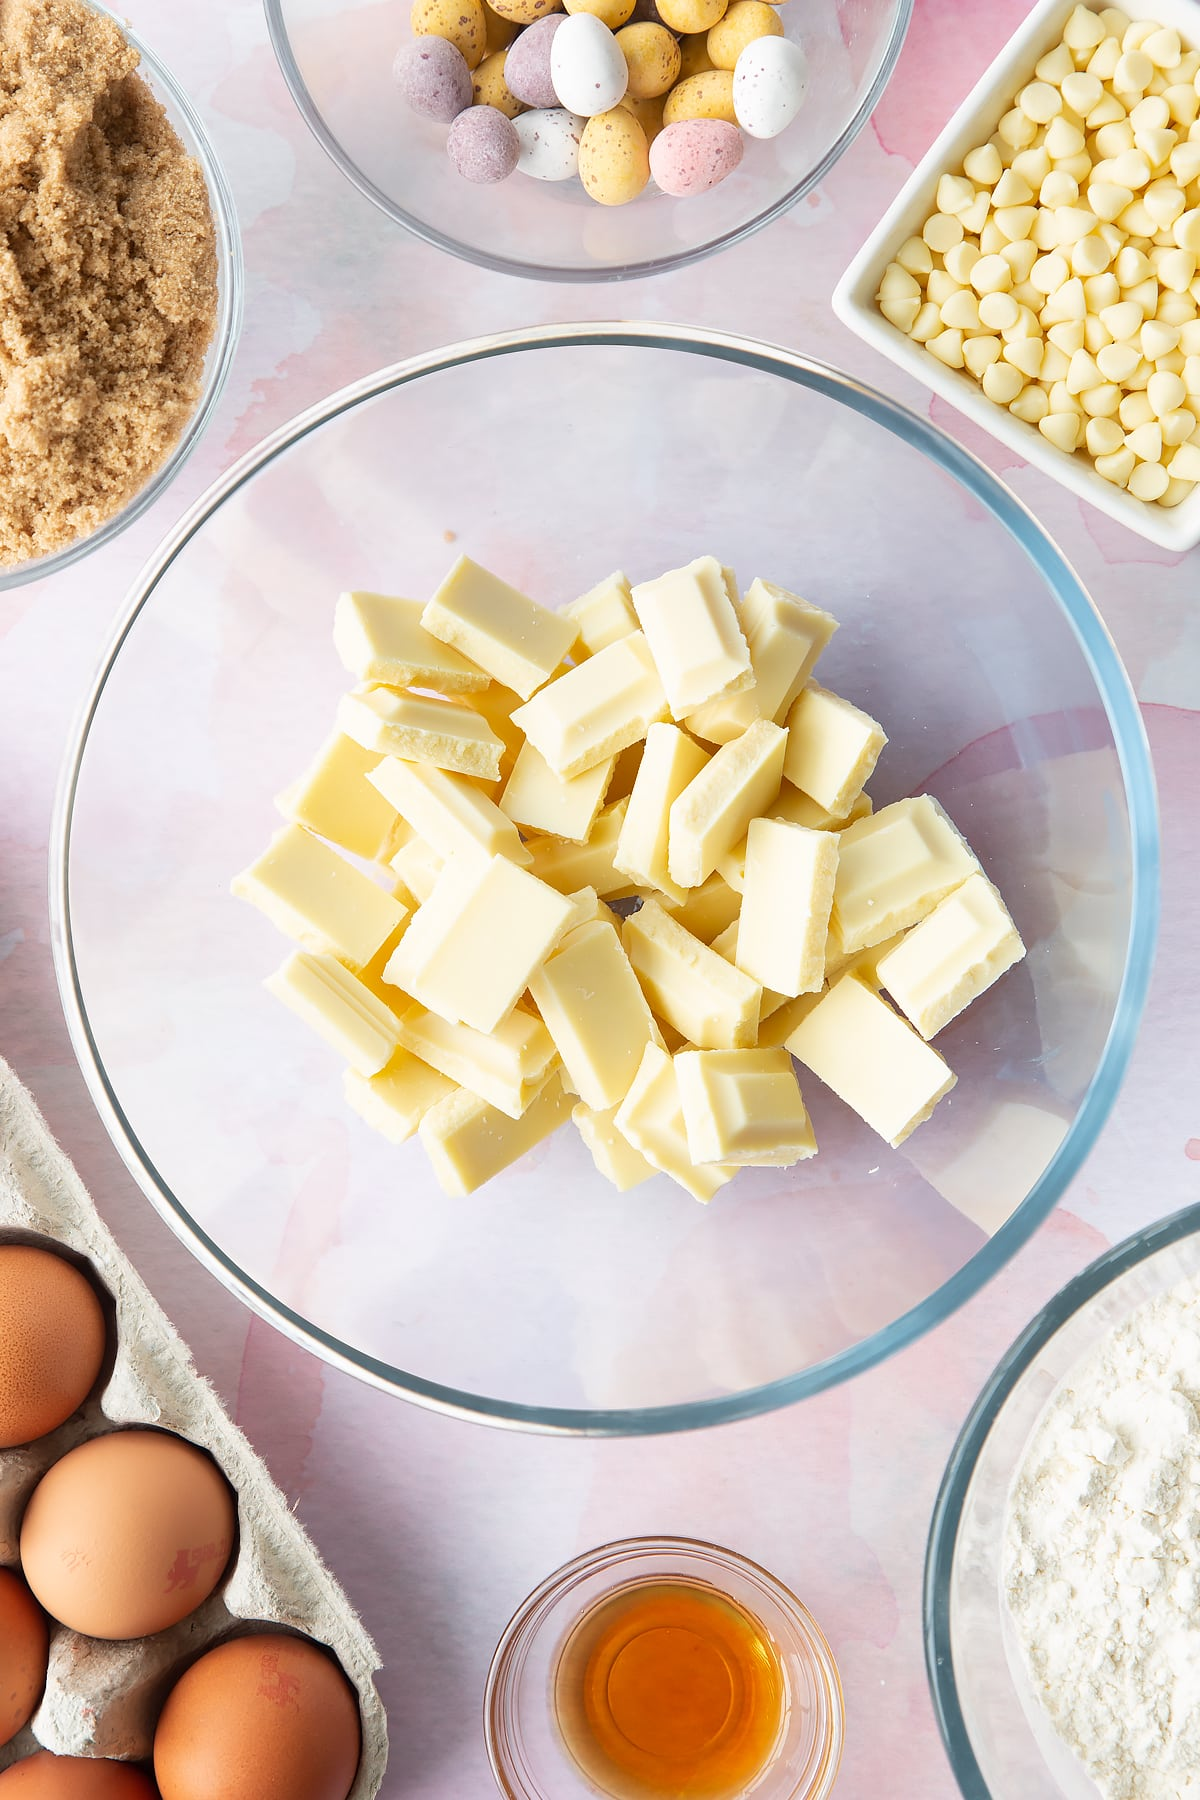 White chocolate chunks in a bowl. Ingredients to make Mini Egg blondies surround the bowl.